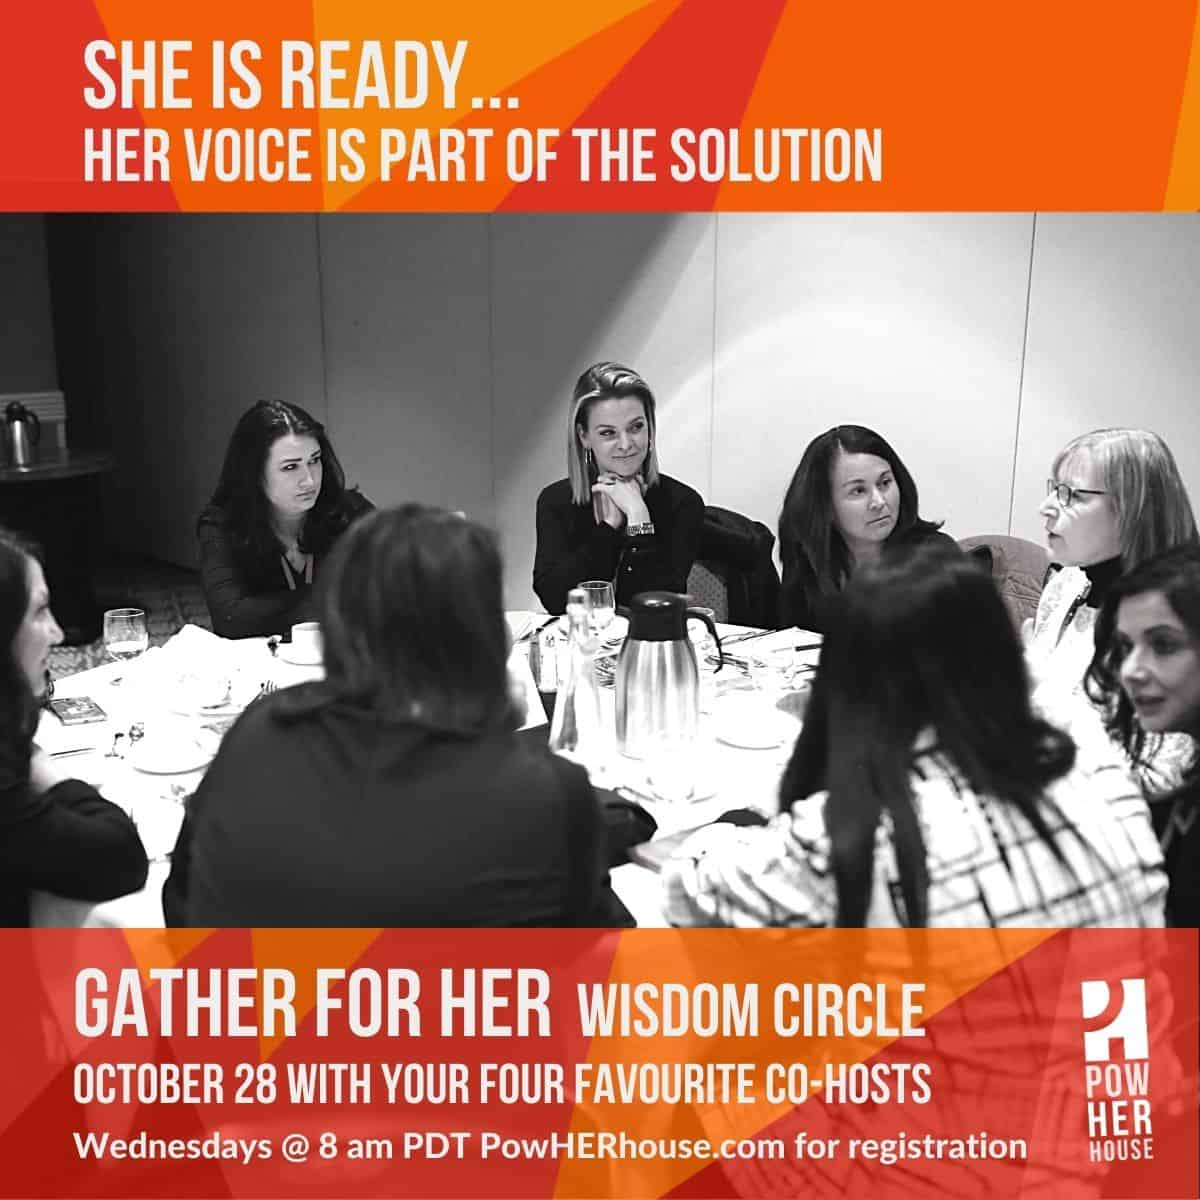 GATHER Wisdom Circle Announcement - October 28th